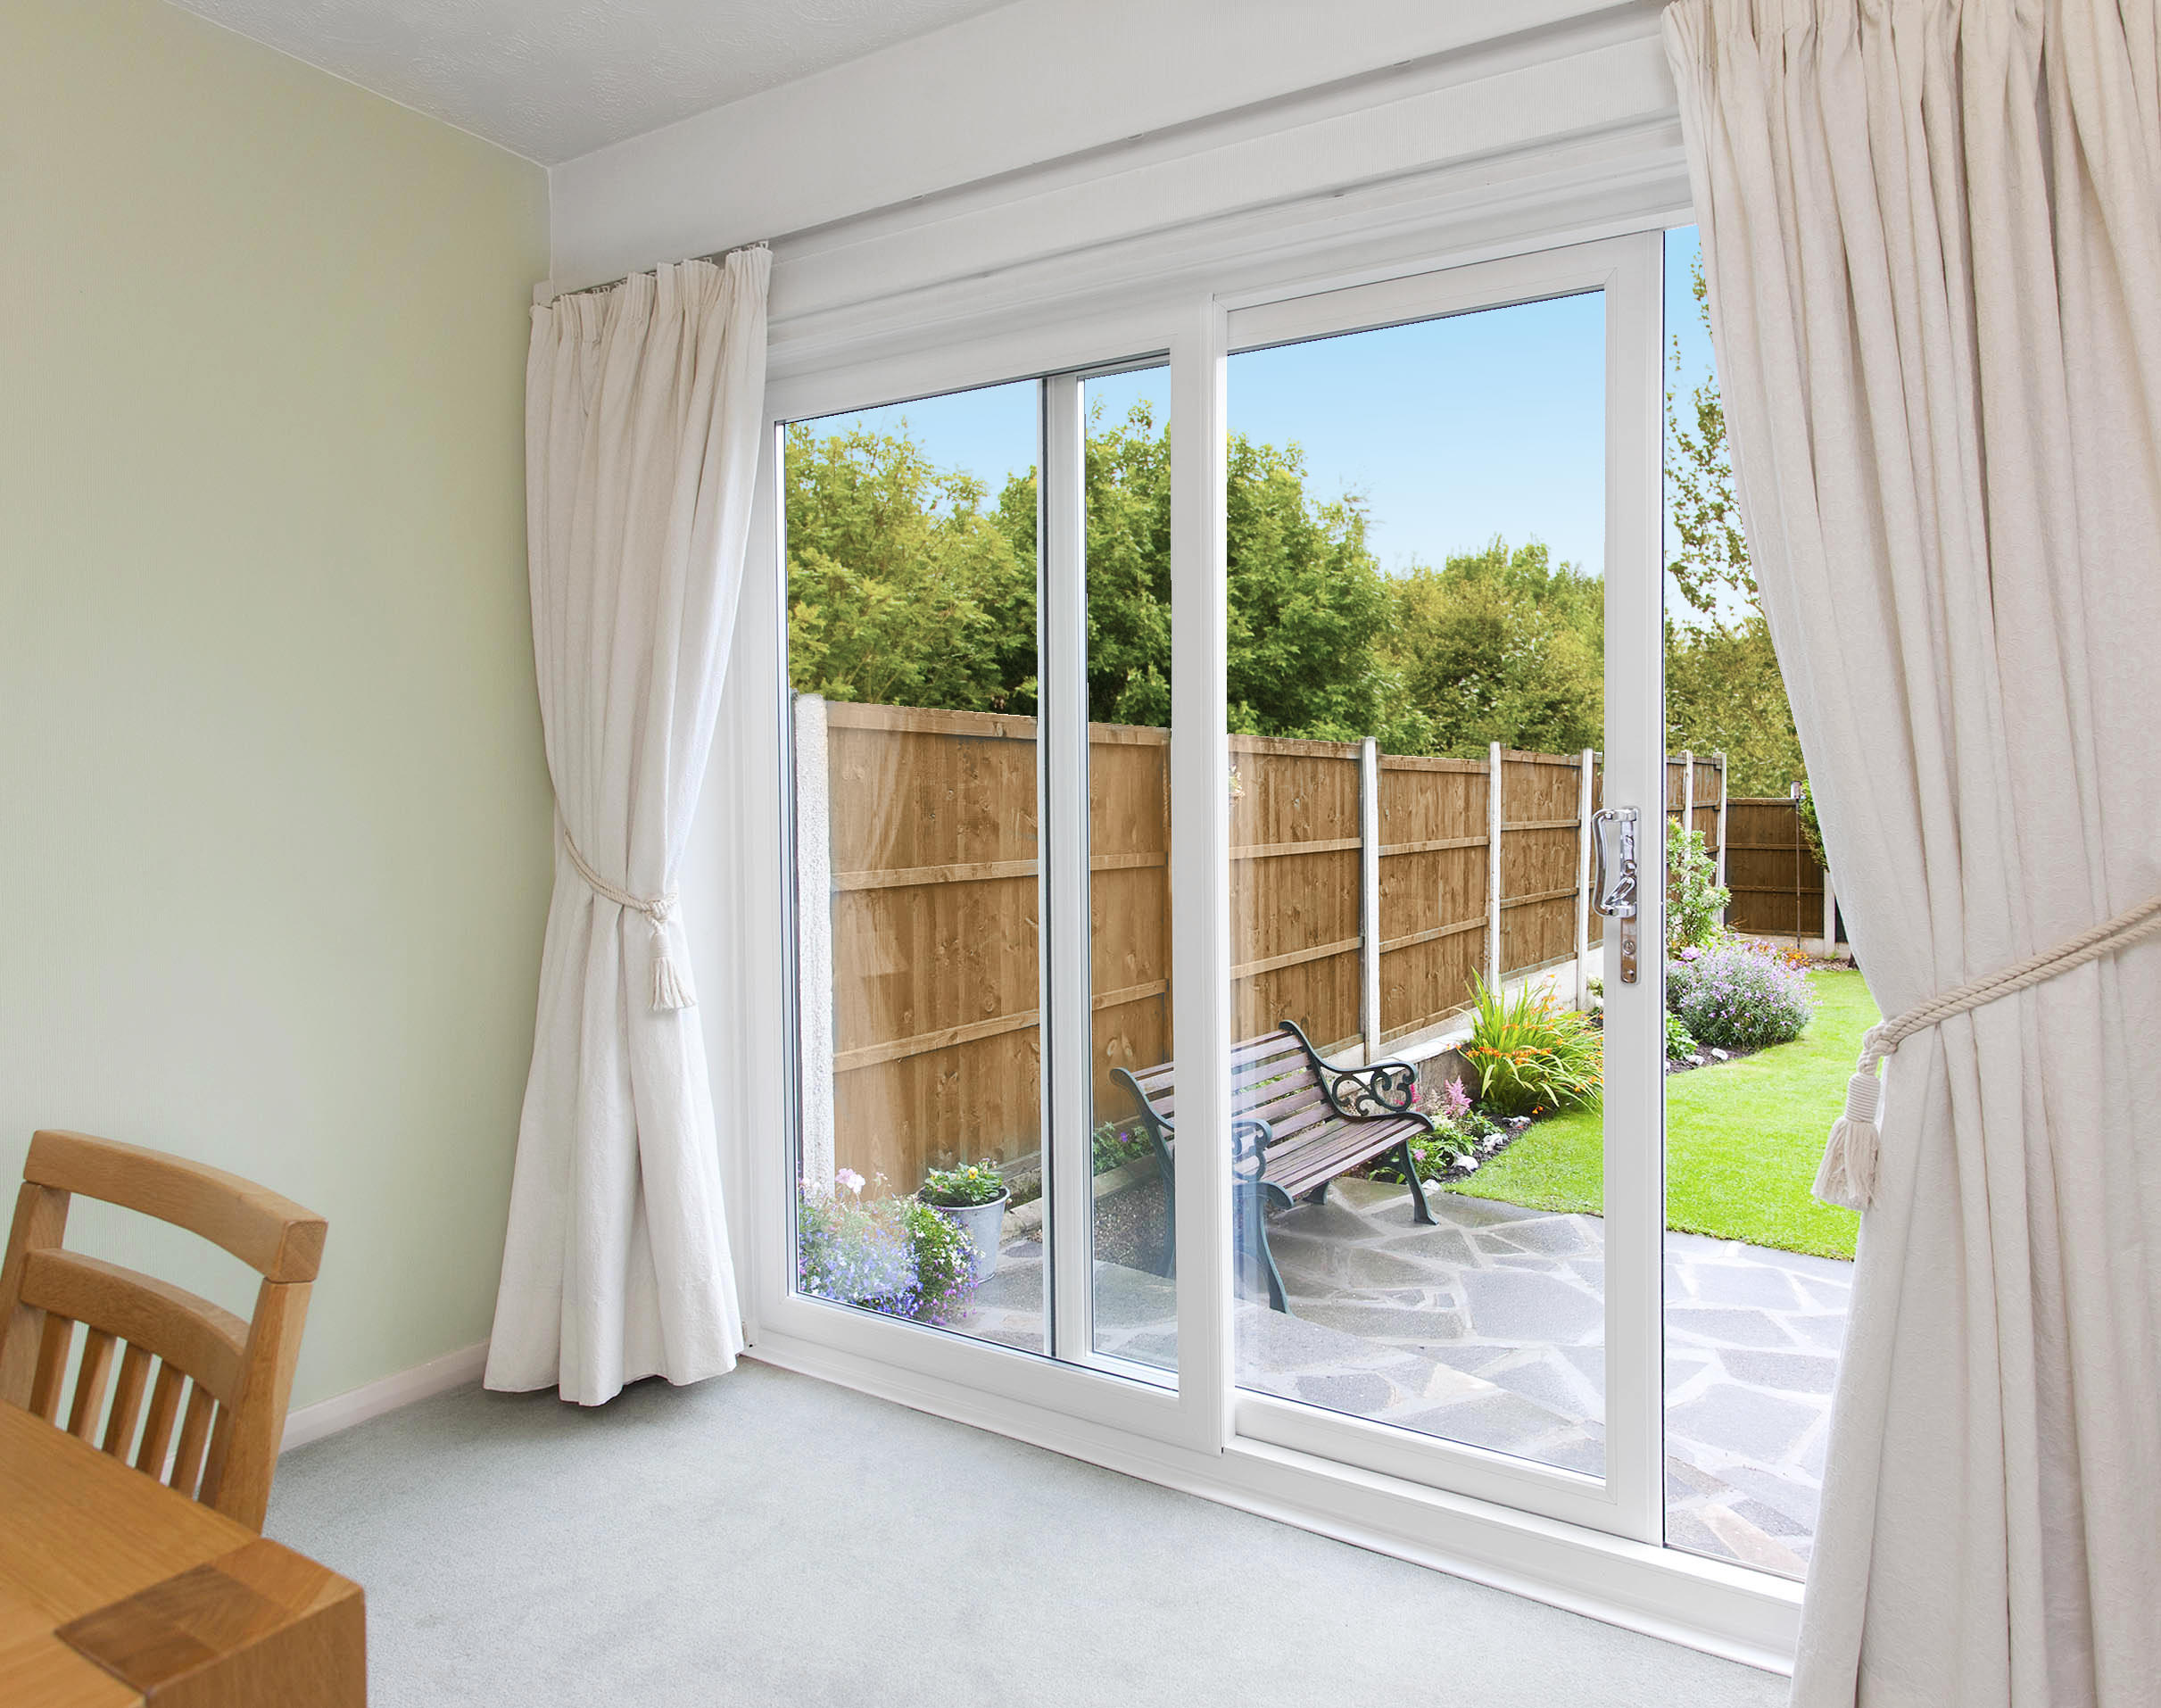 Patio door prices patio doors kent upvc doors for Double glazed upvc patio doors